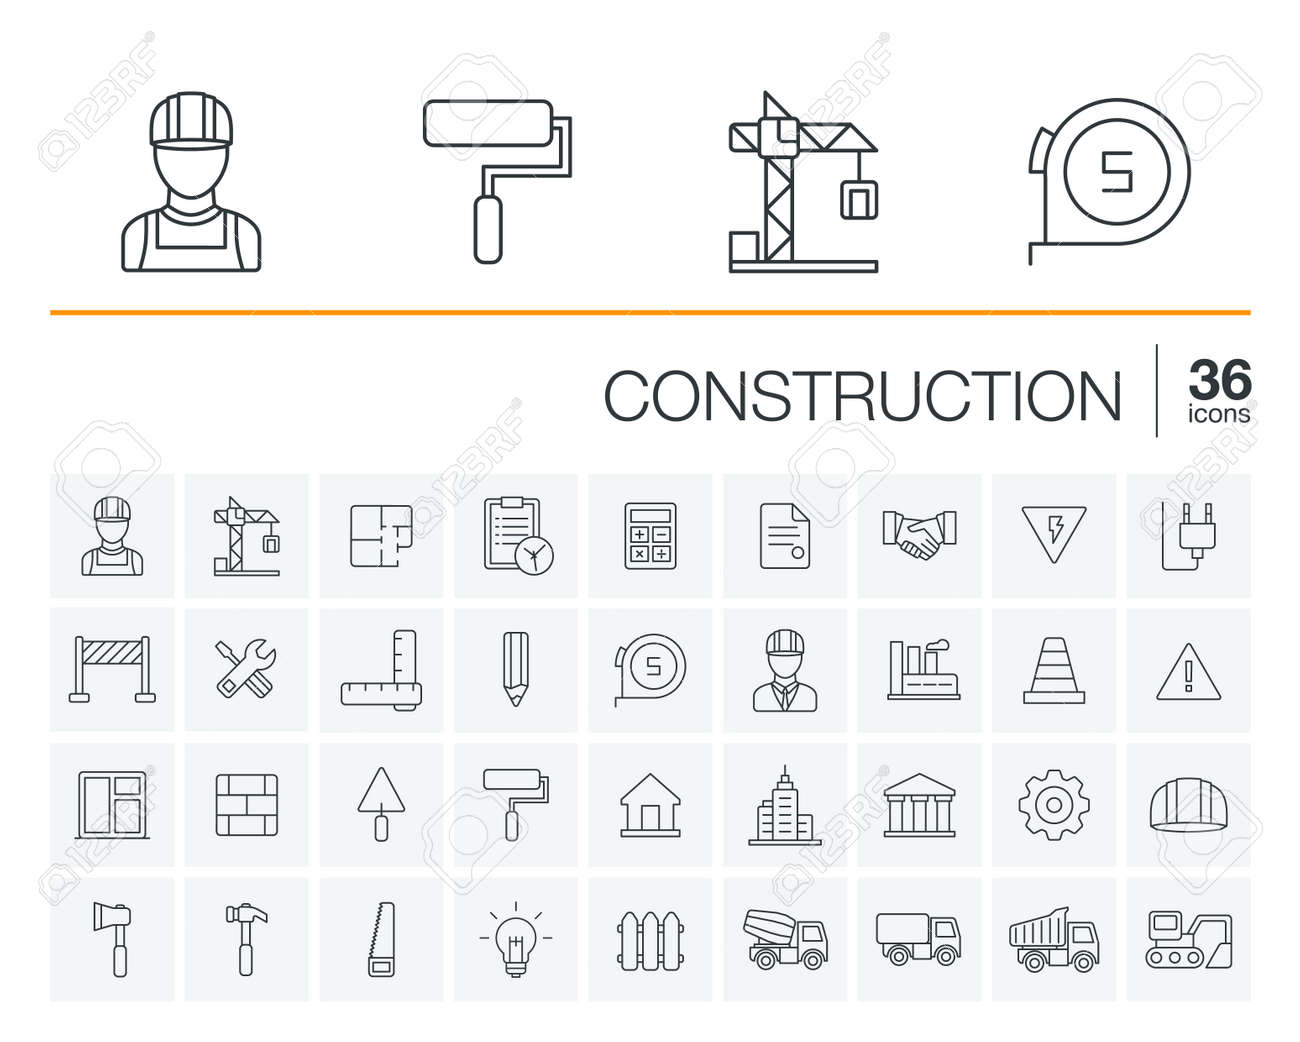 Vector thin line rounded icons set and graphic design elements. Illustration with construction, industrial, architectural, engineering outline symbols. Home repair tools, worker, building pictogram - 53668070